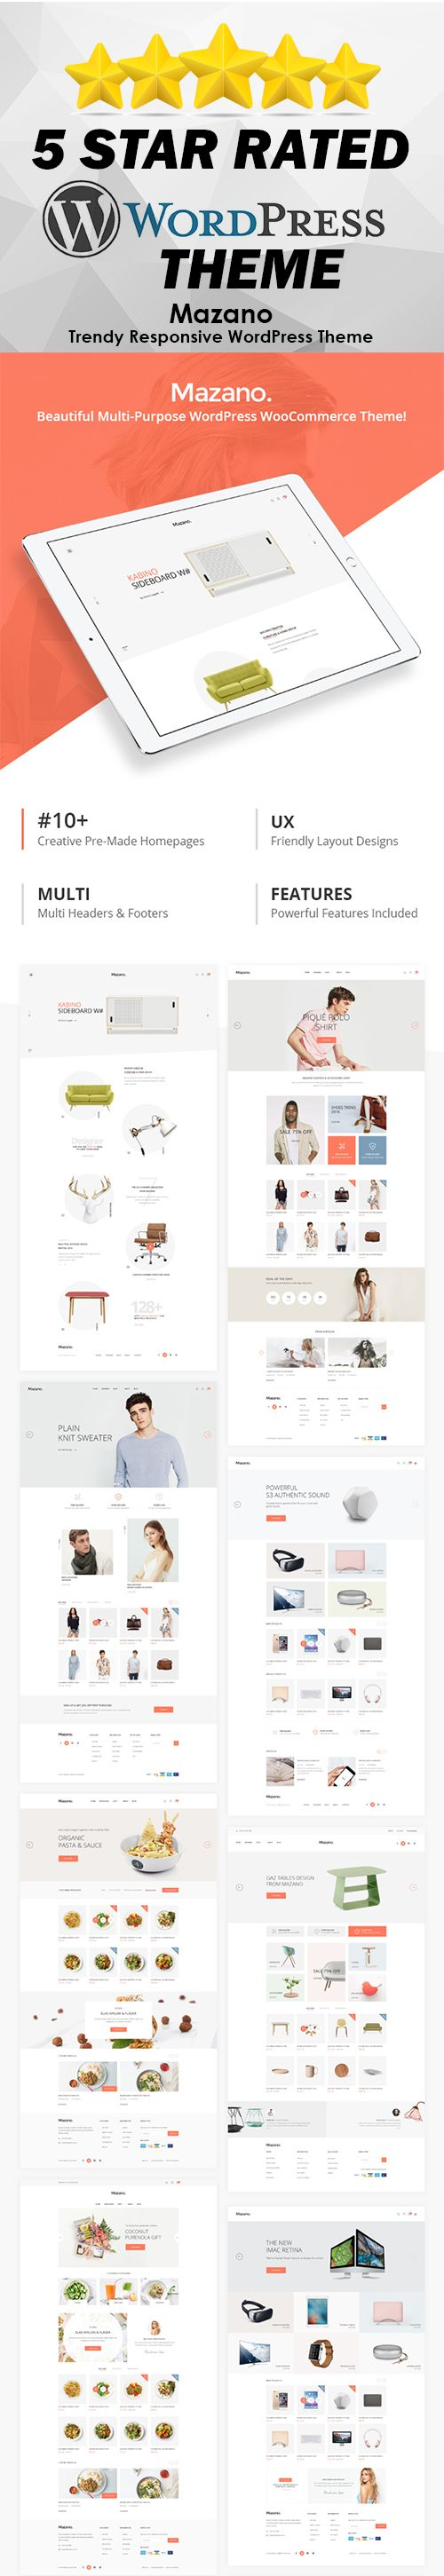 Beautiful Multipurpose Wordpress Woocommerce Theme. Mazano Wordpress theme is professional, clean, modern and multipurpose. It's a responsive theme with a stunning look on any screen or device. This theme comes with many features like 7 shop variations, 8 product layouts, 4 blog options, newsletter popup, Instagram feed and much more features that you will love this Wordpress Theme.